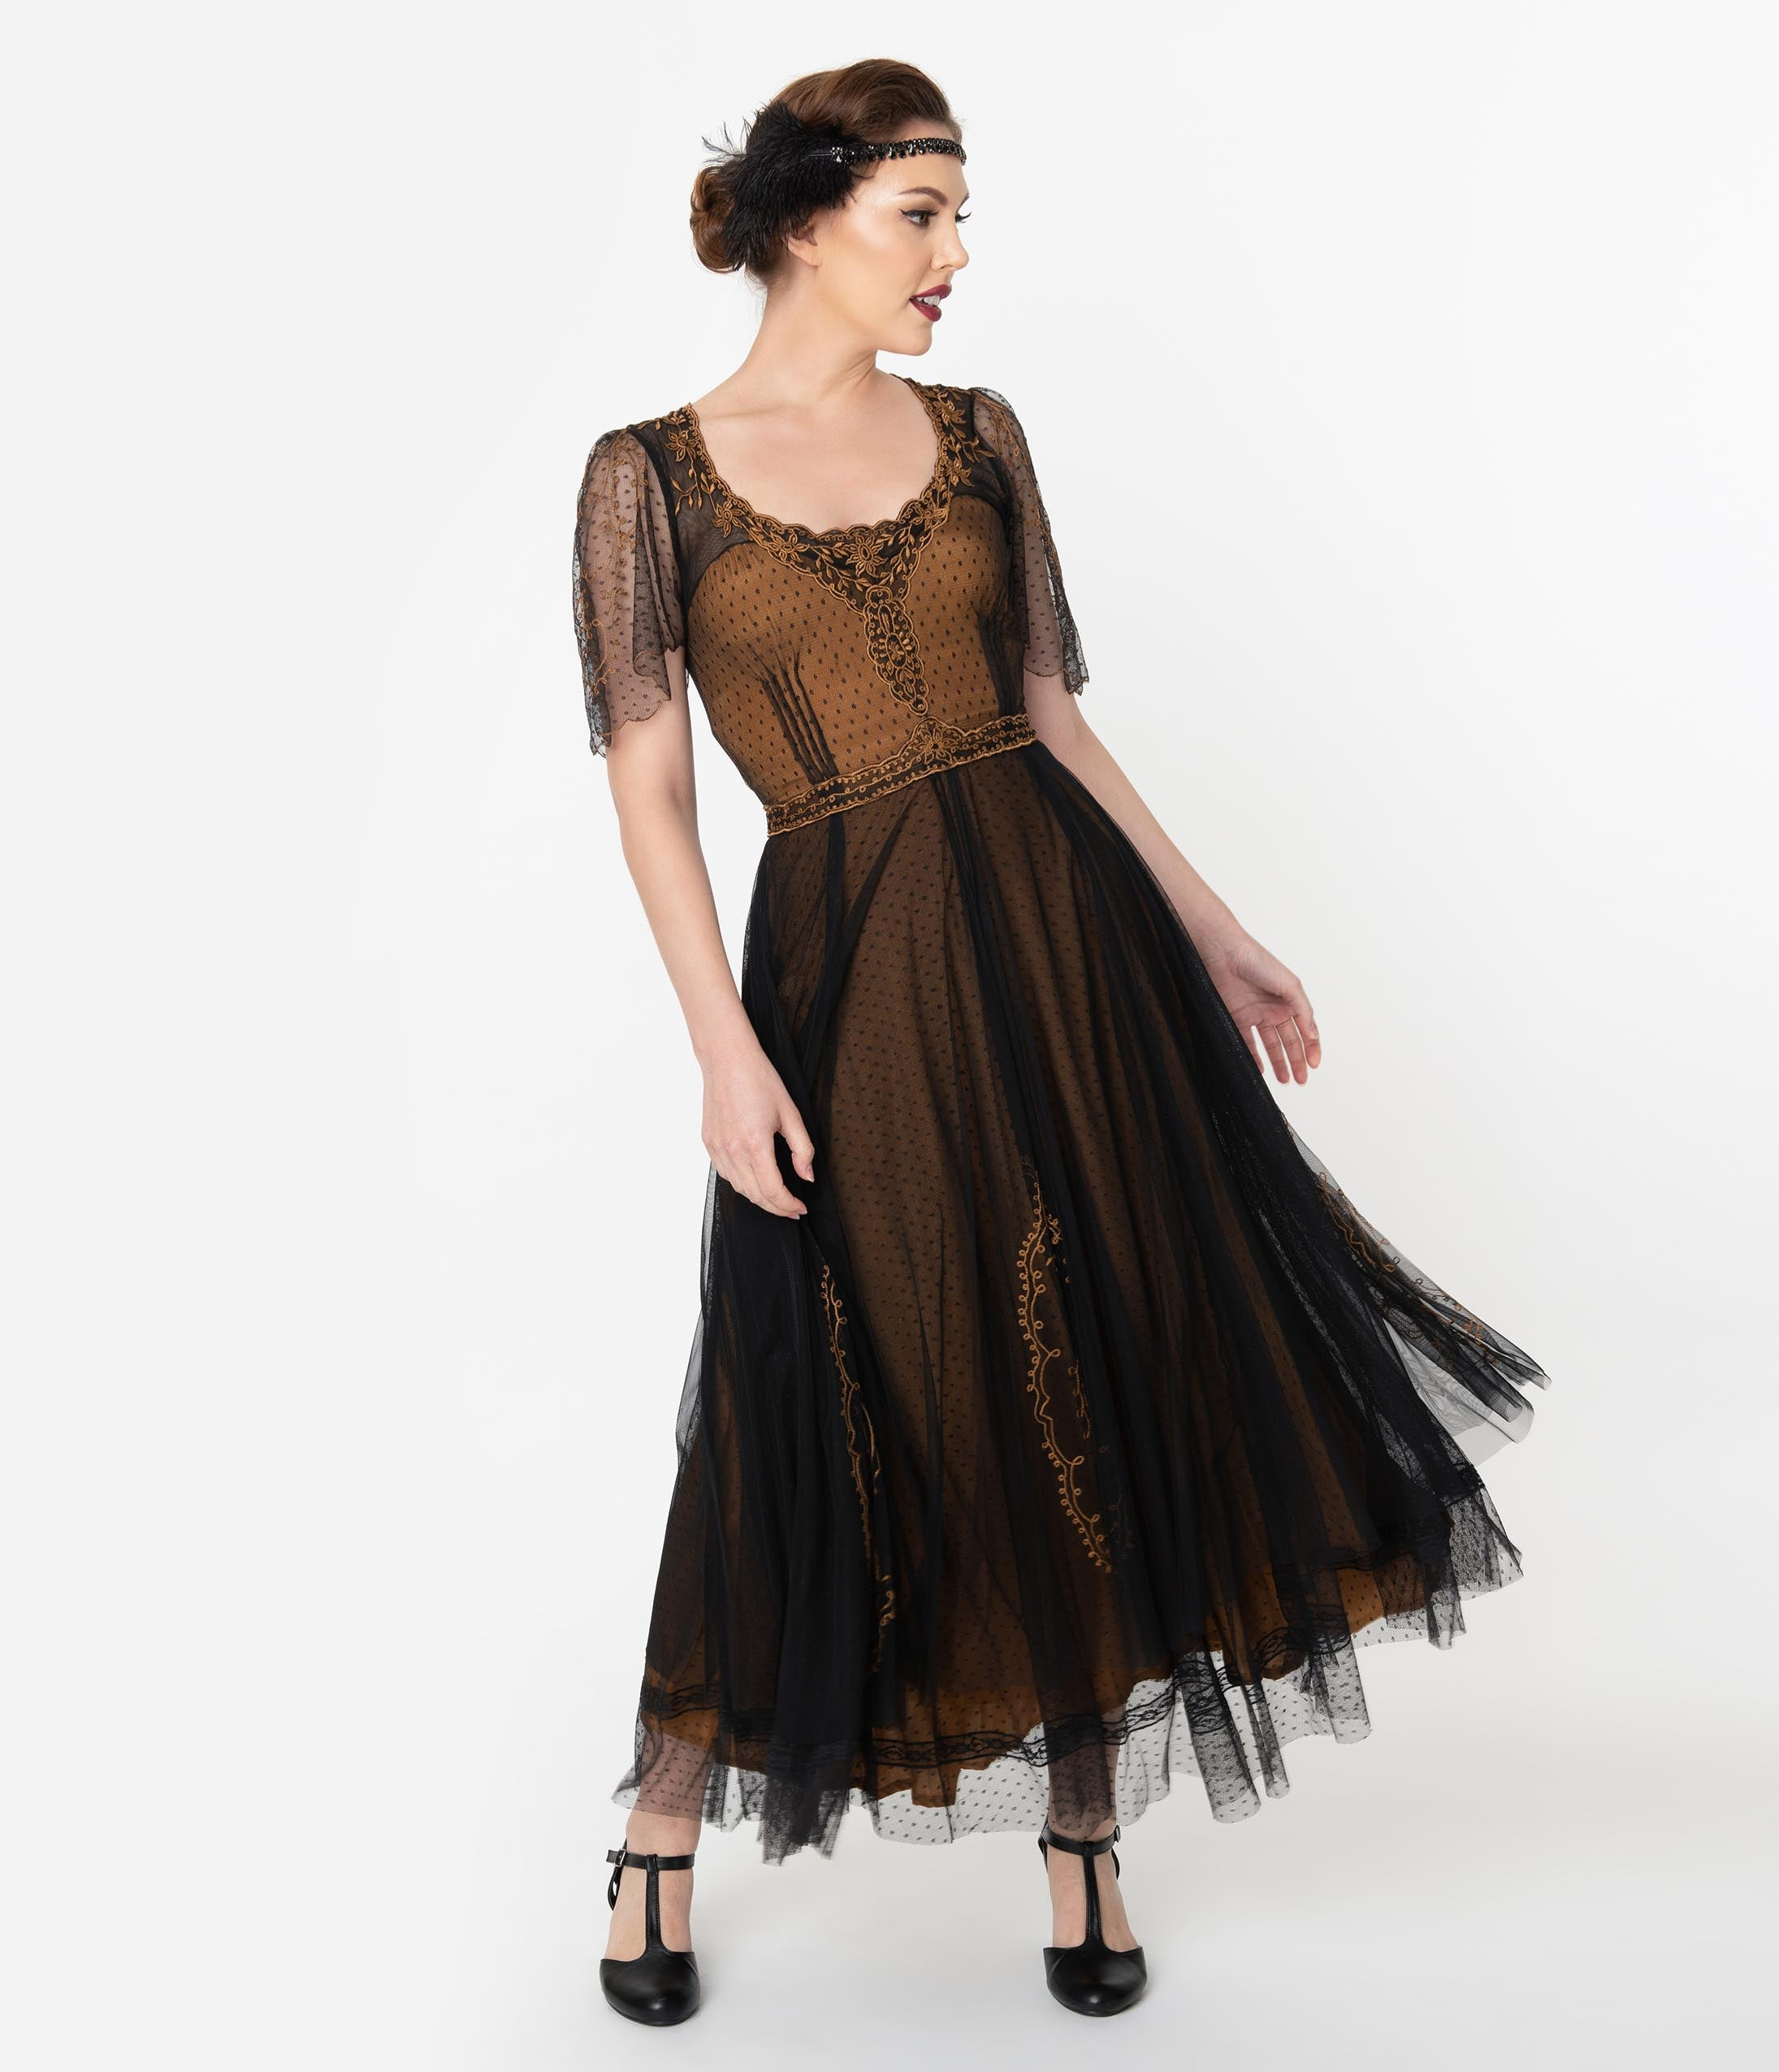 Flapper Costume: How to Dress Like a 20s Flapper Girl Vintage Style Black  Gold Embroidered Mesh Edwardian Gown $299.00 AT vintagedancer.com